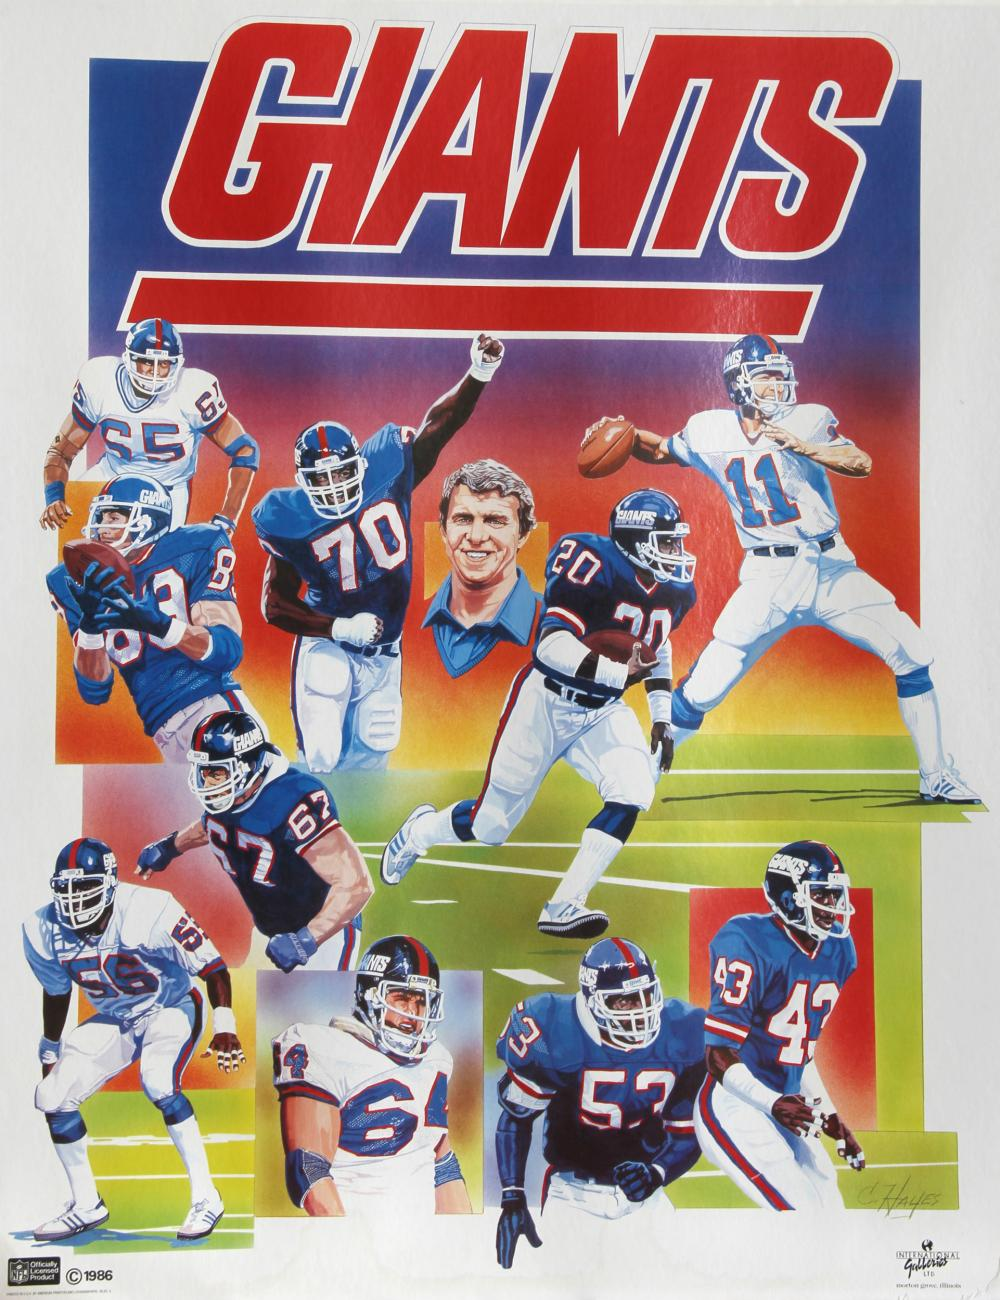 New York Giants NFL, Poster, autographed by C. Hayes